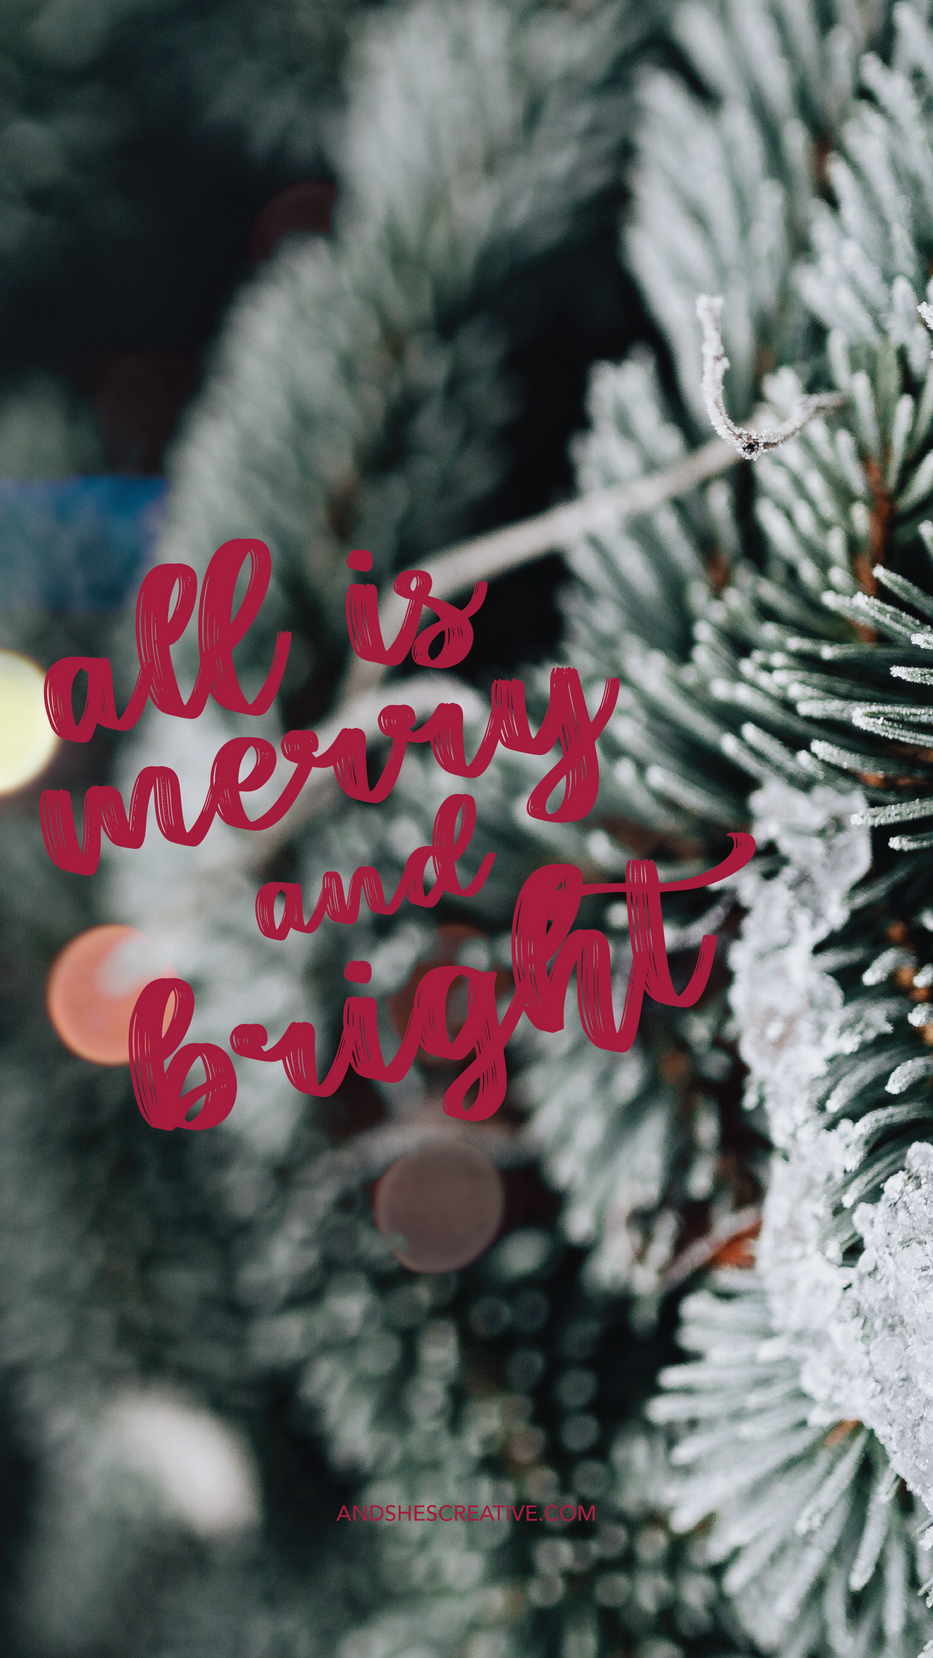 All is Merry and Bright Mobile Background